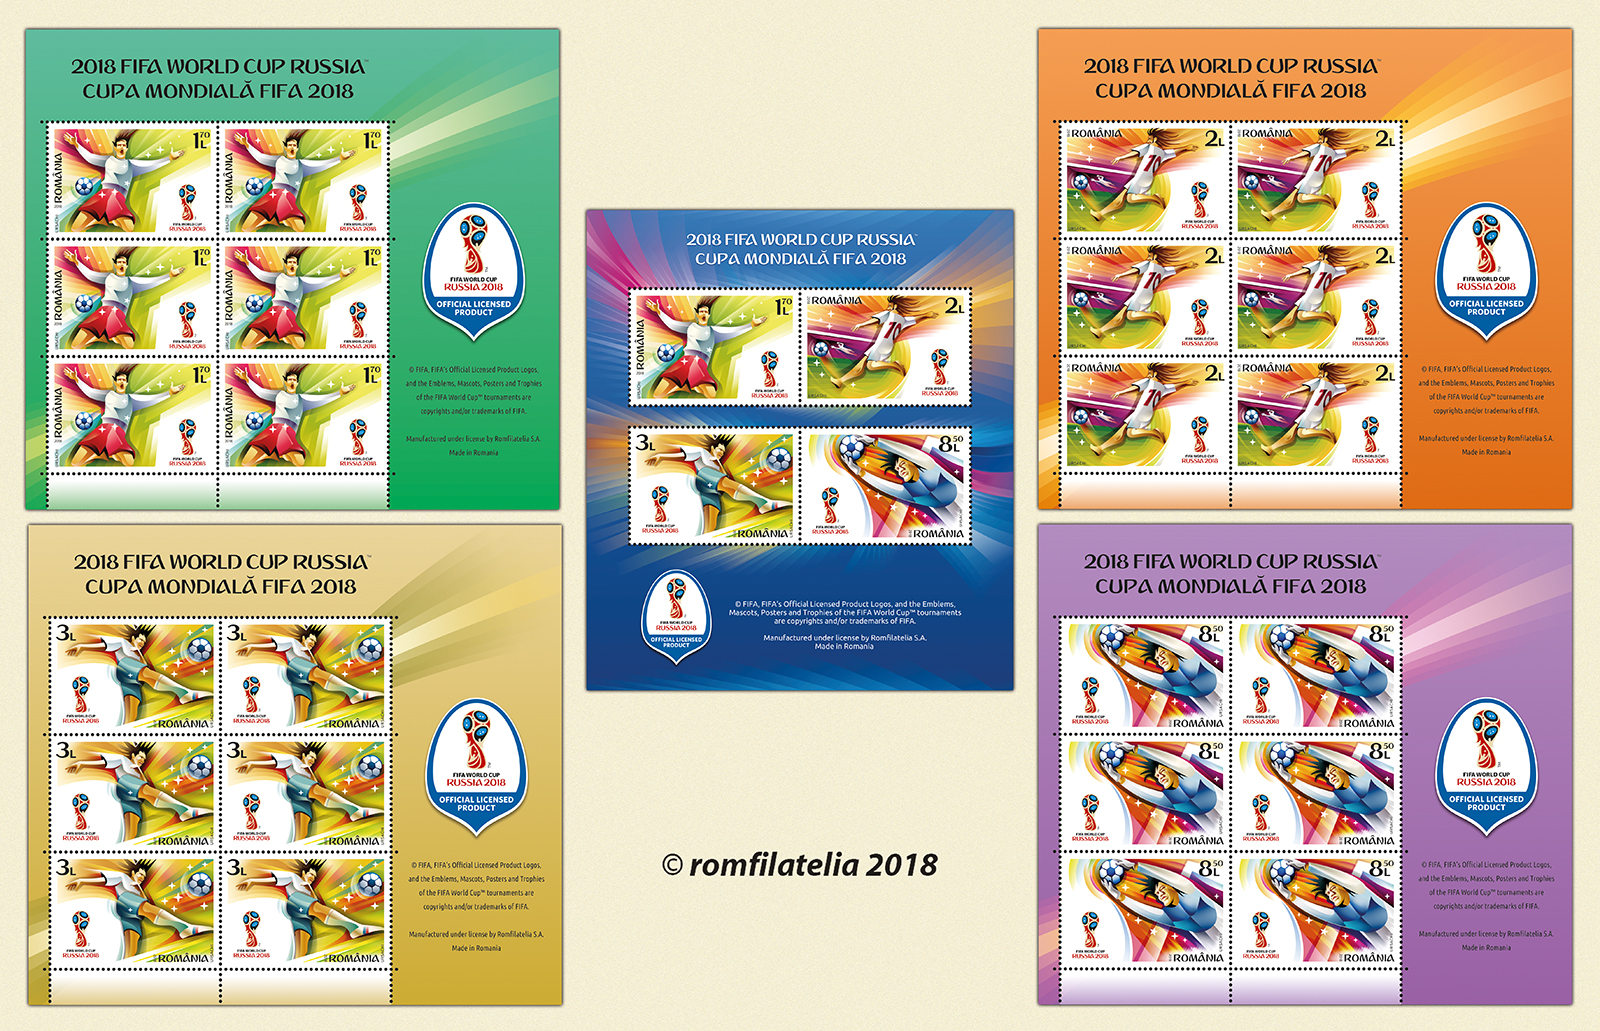 Postage stamps for the World Cup 2018 13